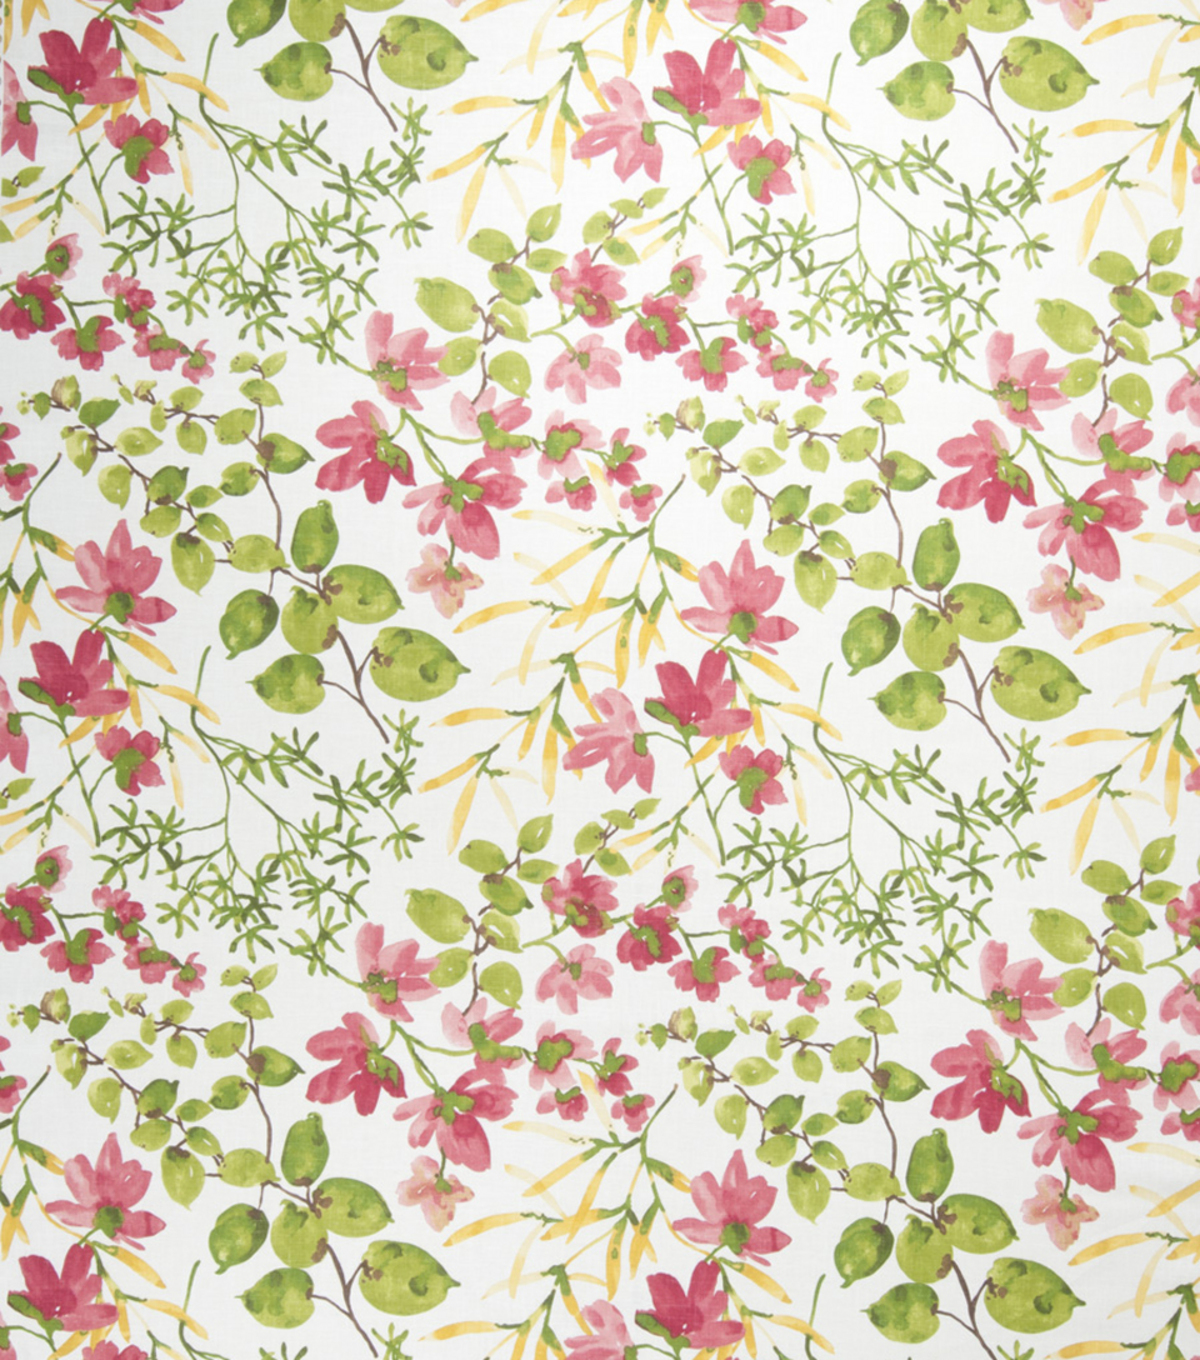 Home Decor 8\u0022x8\u0022 Fabric Swatch-Eaton Square Freida Raspberry